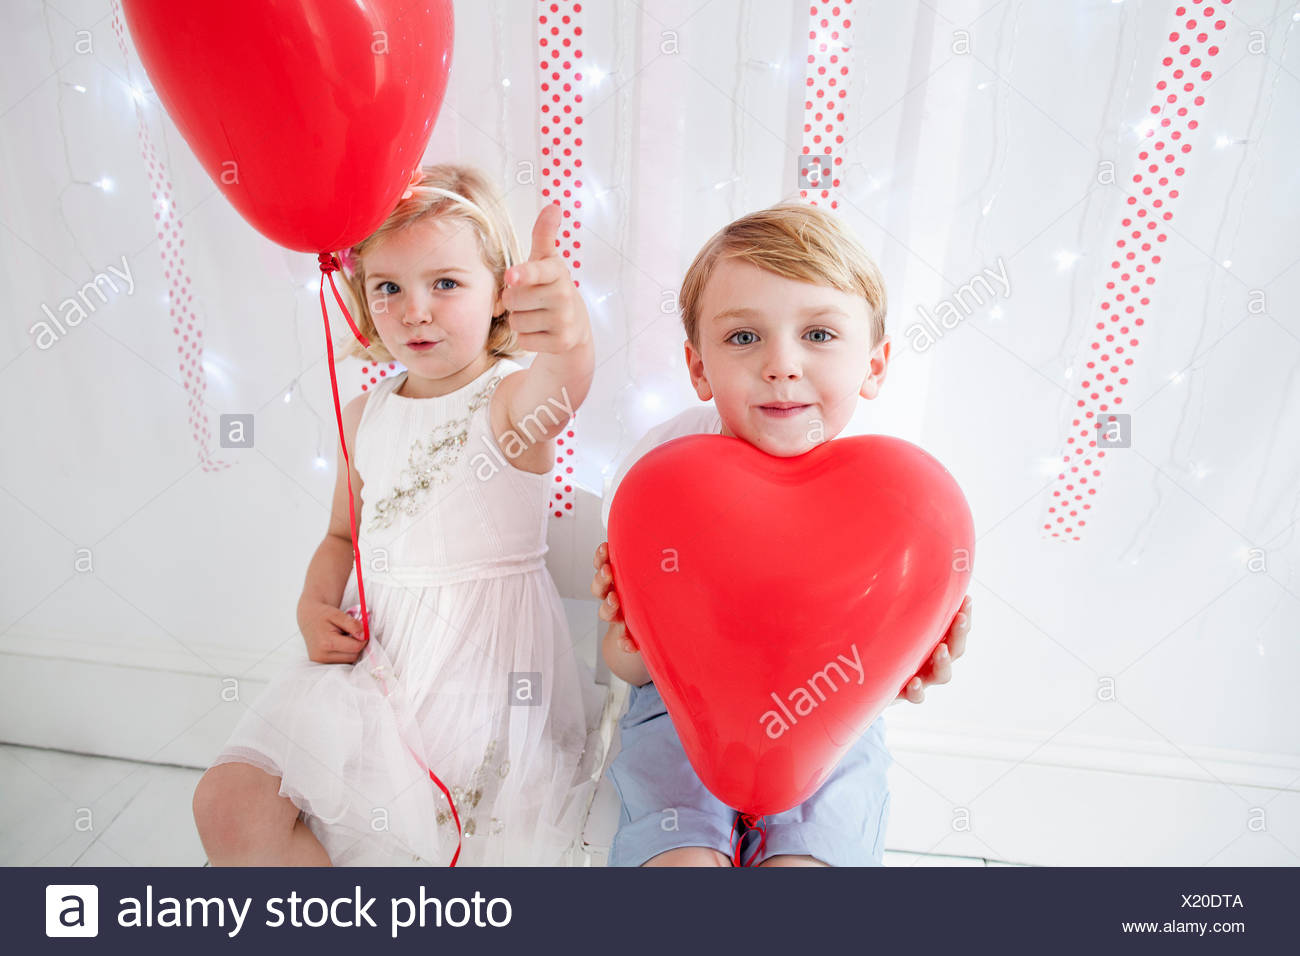 Young boy and girl posing for a picture in a photographers studio, holding red balloons. - Stock Image